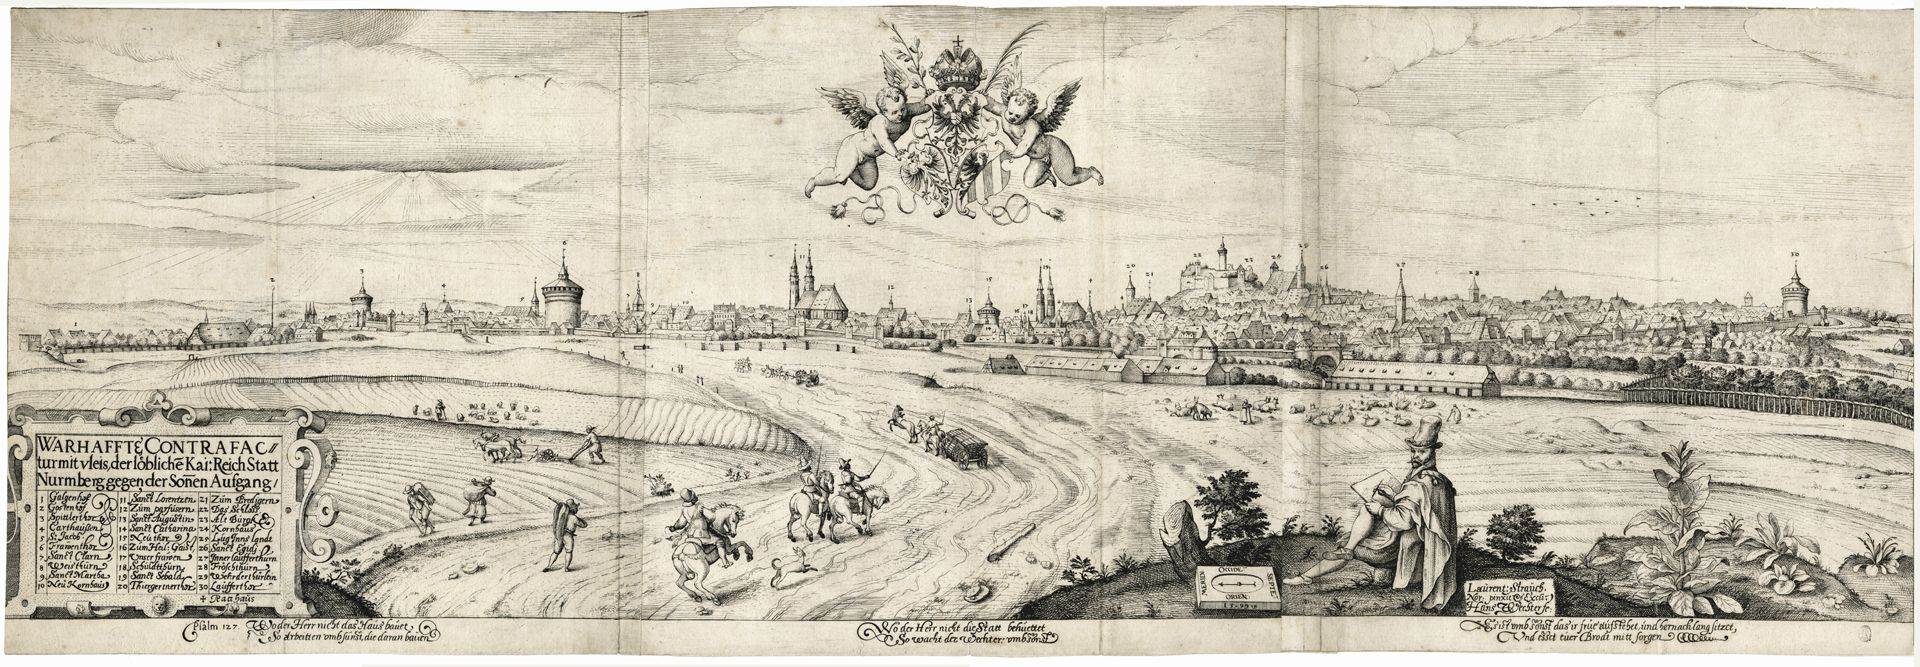 Imperial City of Nuremberg against the Rise of the Sun (east) Copper engraving from 1599 by Hans Wechter (1575-1608) after an oil painting by Lorenz Strauch (1554-1630)